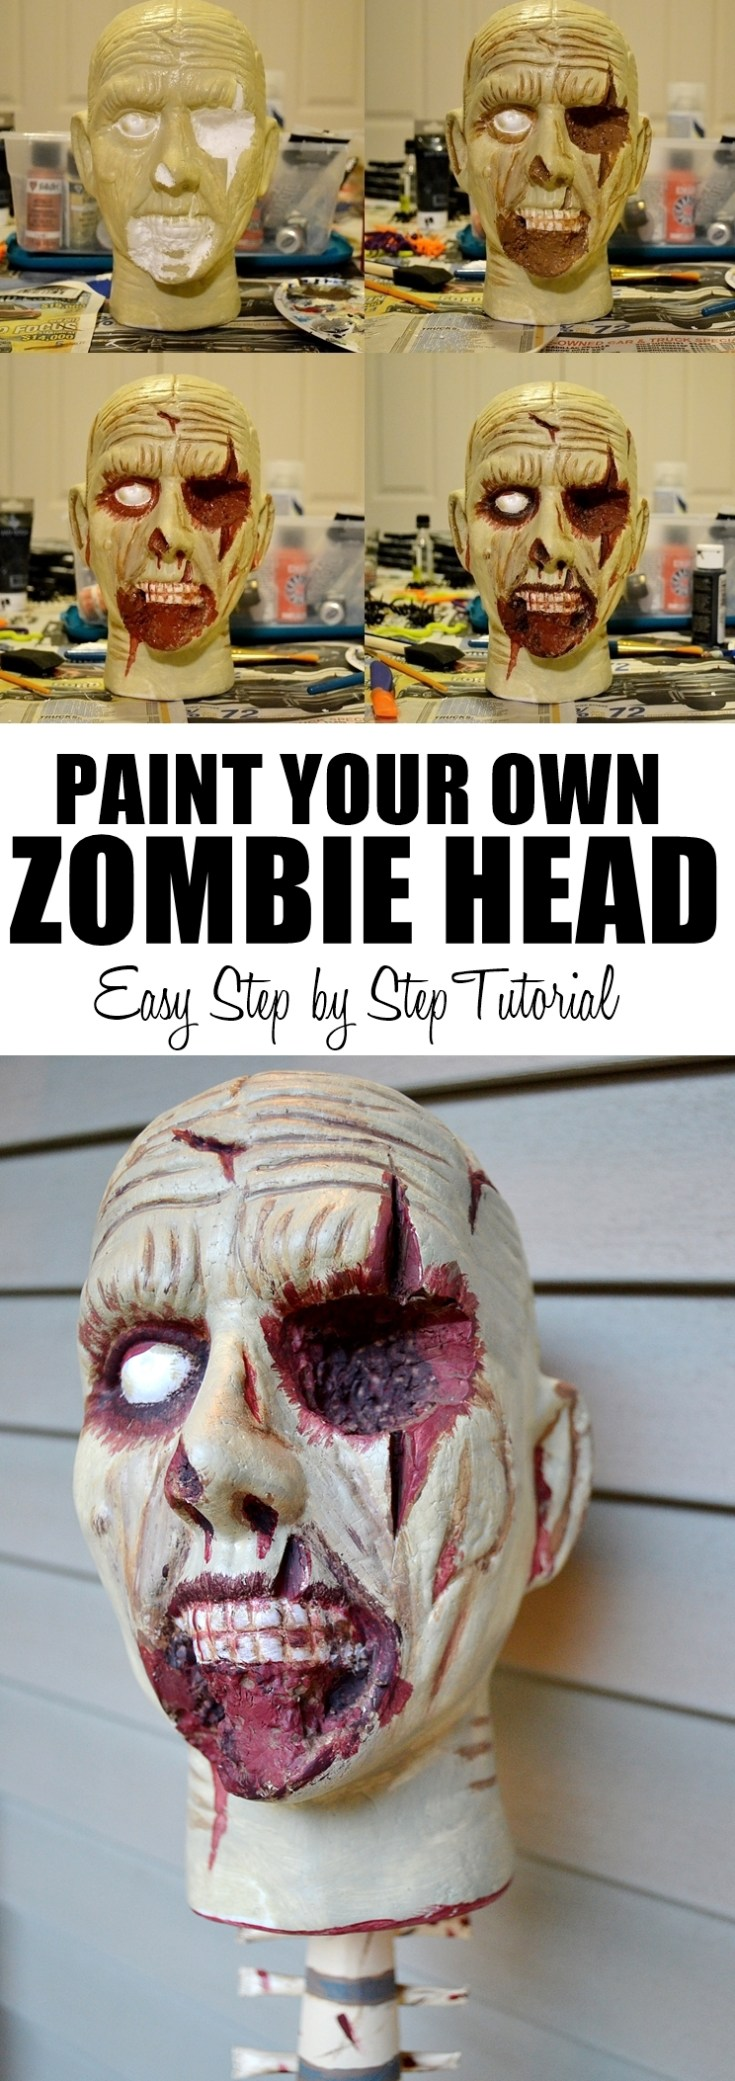 Easy Zombie Head Prop Painting Tutorial